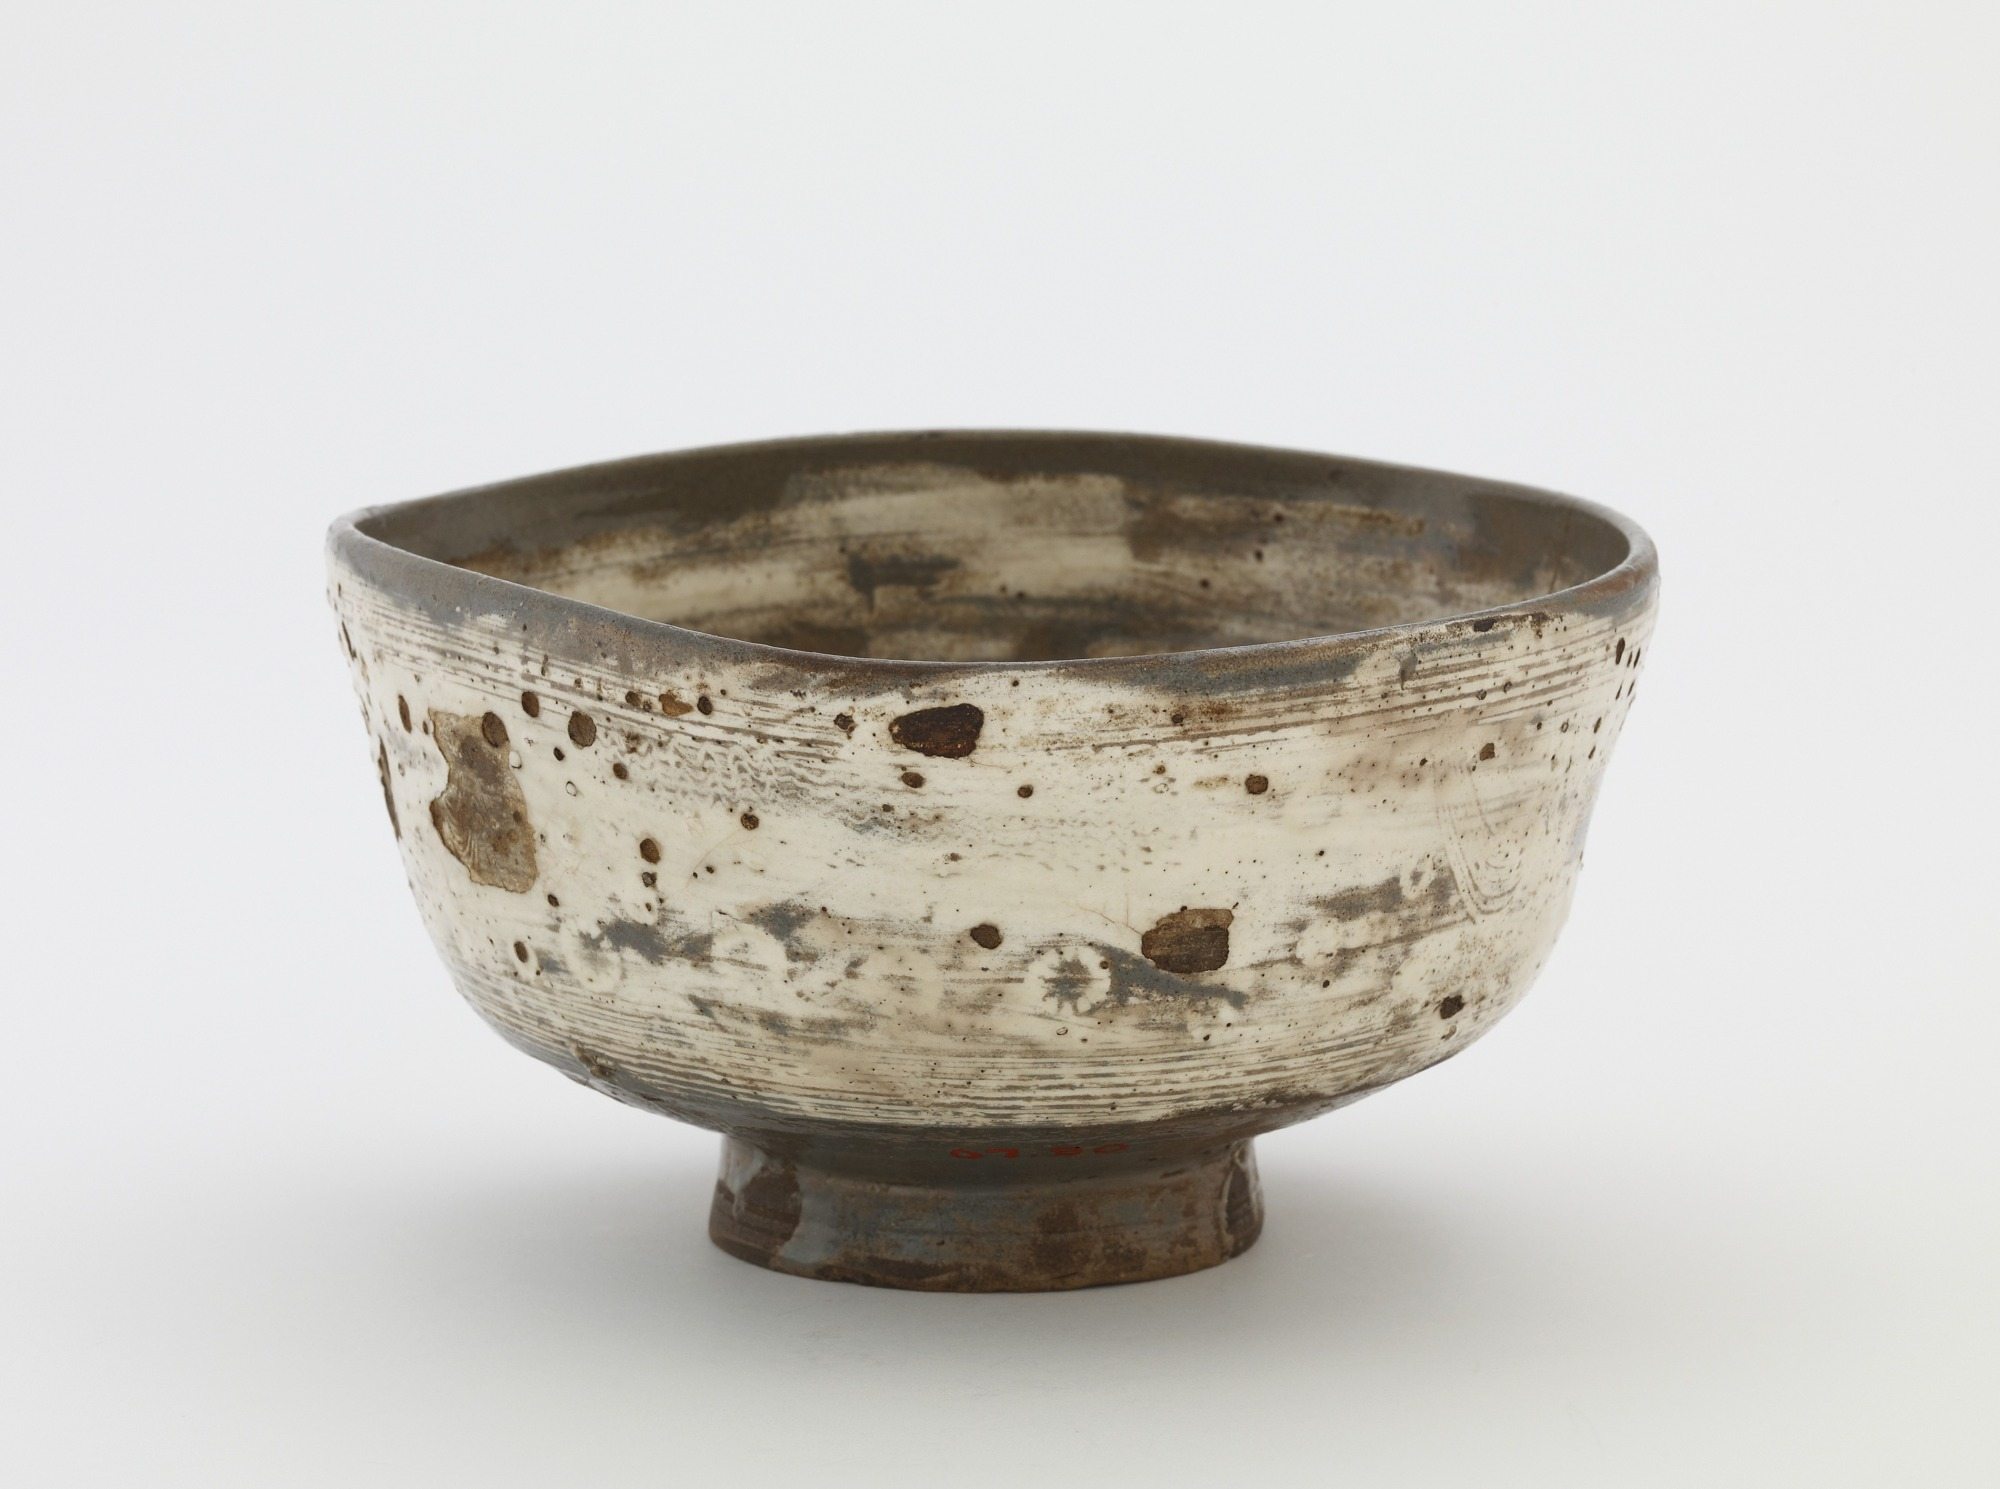 Serving bowl or tea bowl, profile